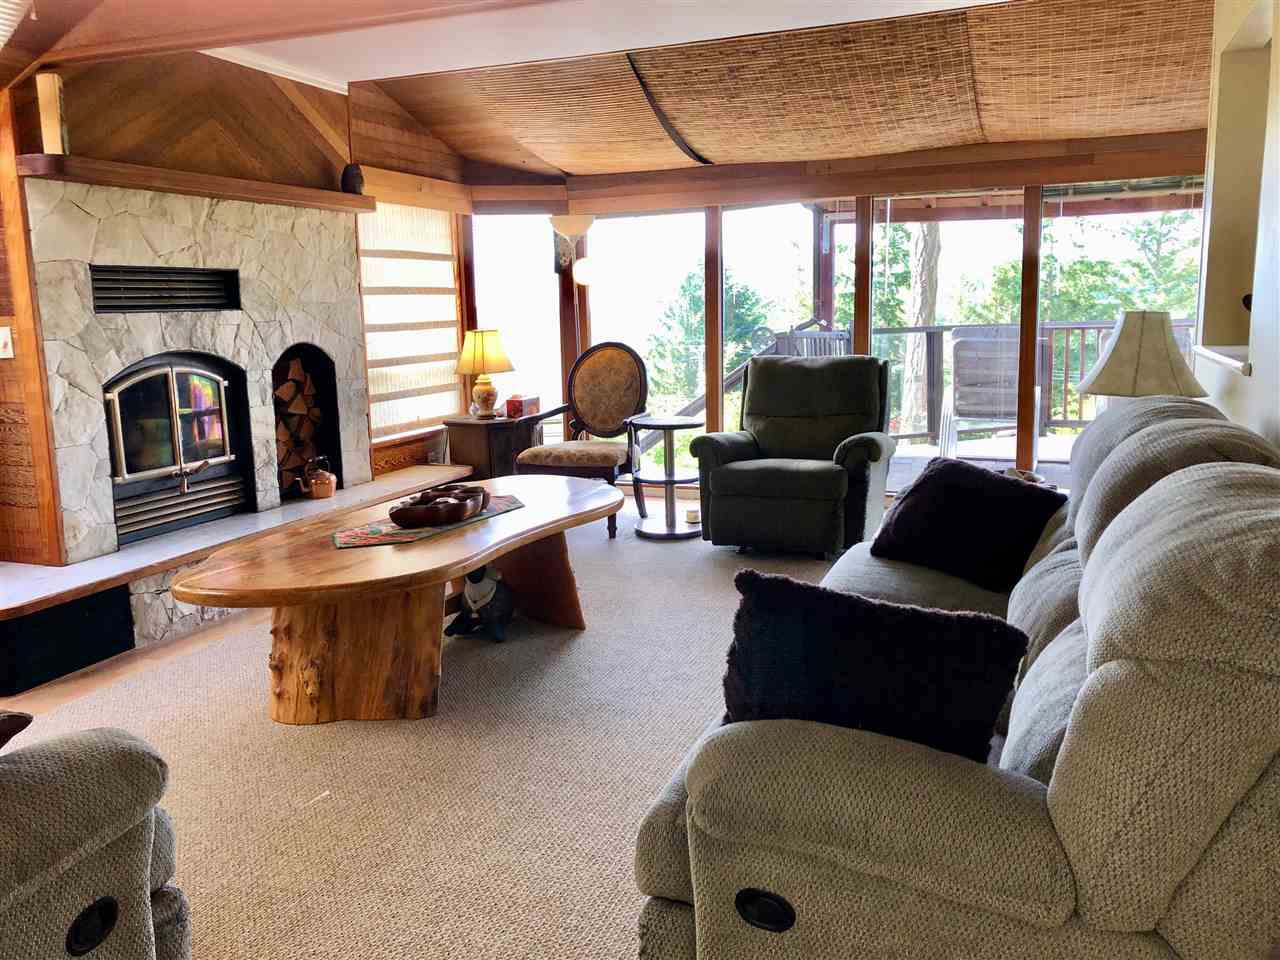 Photo 5: Photos: 4743 HOTEL LAKE Road in Garden Bay: Pender Harbour Egmont House for sale (Sunshine Coast)  : MLS®# R2424554